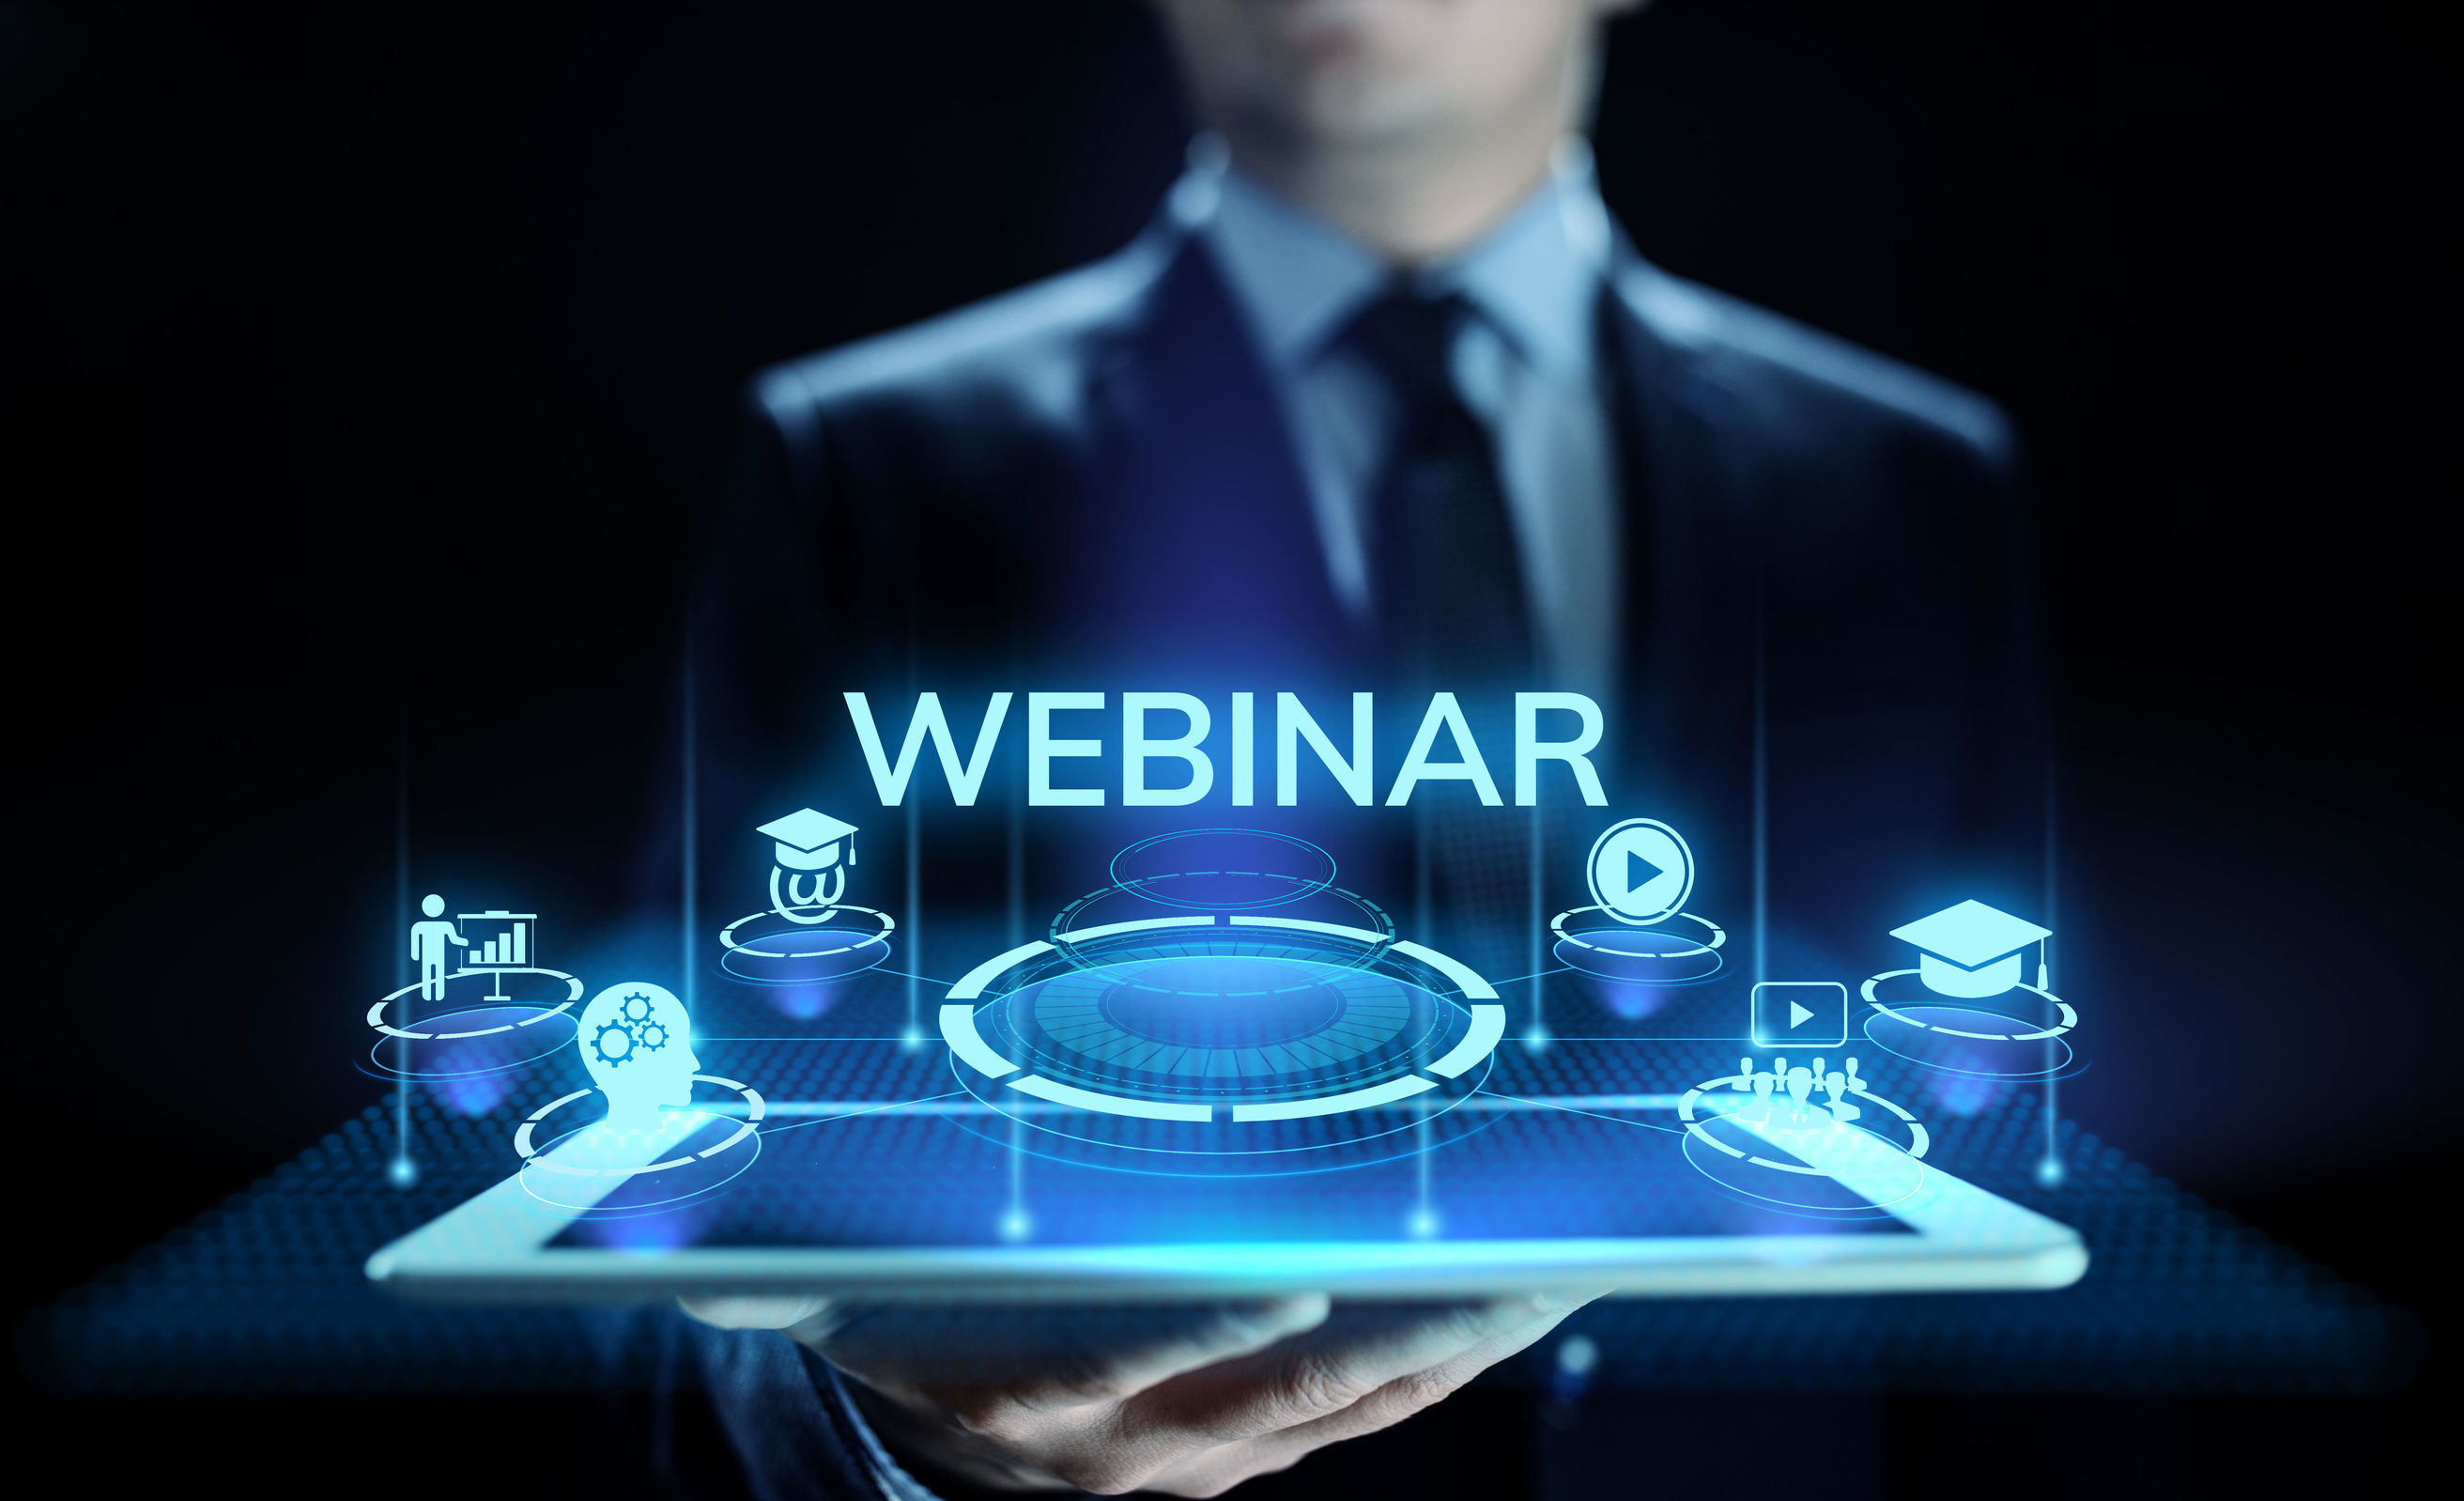 Discover What aACE Can Do for Your Business in Our September Webinars